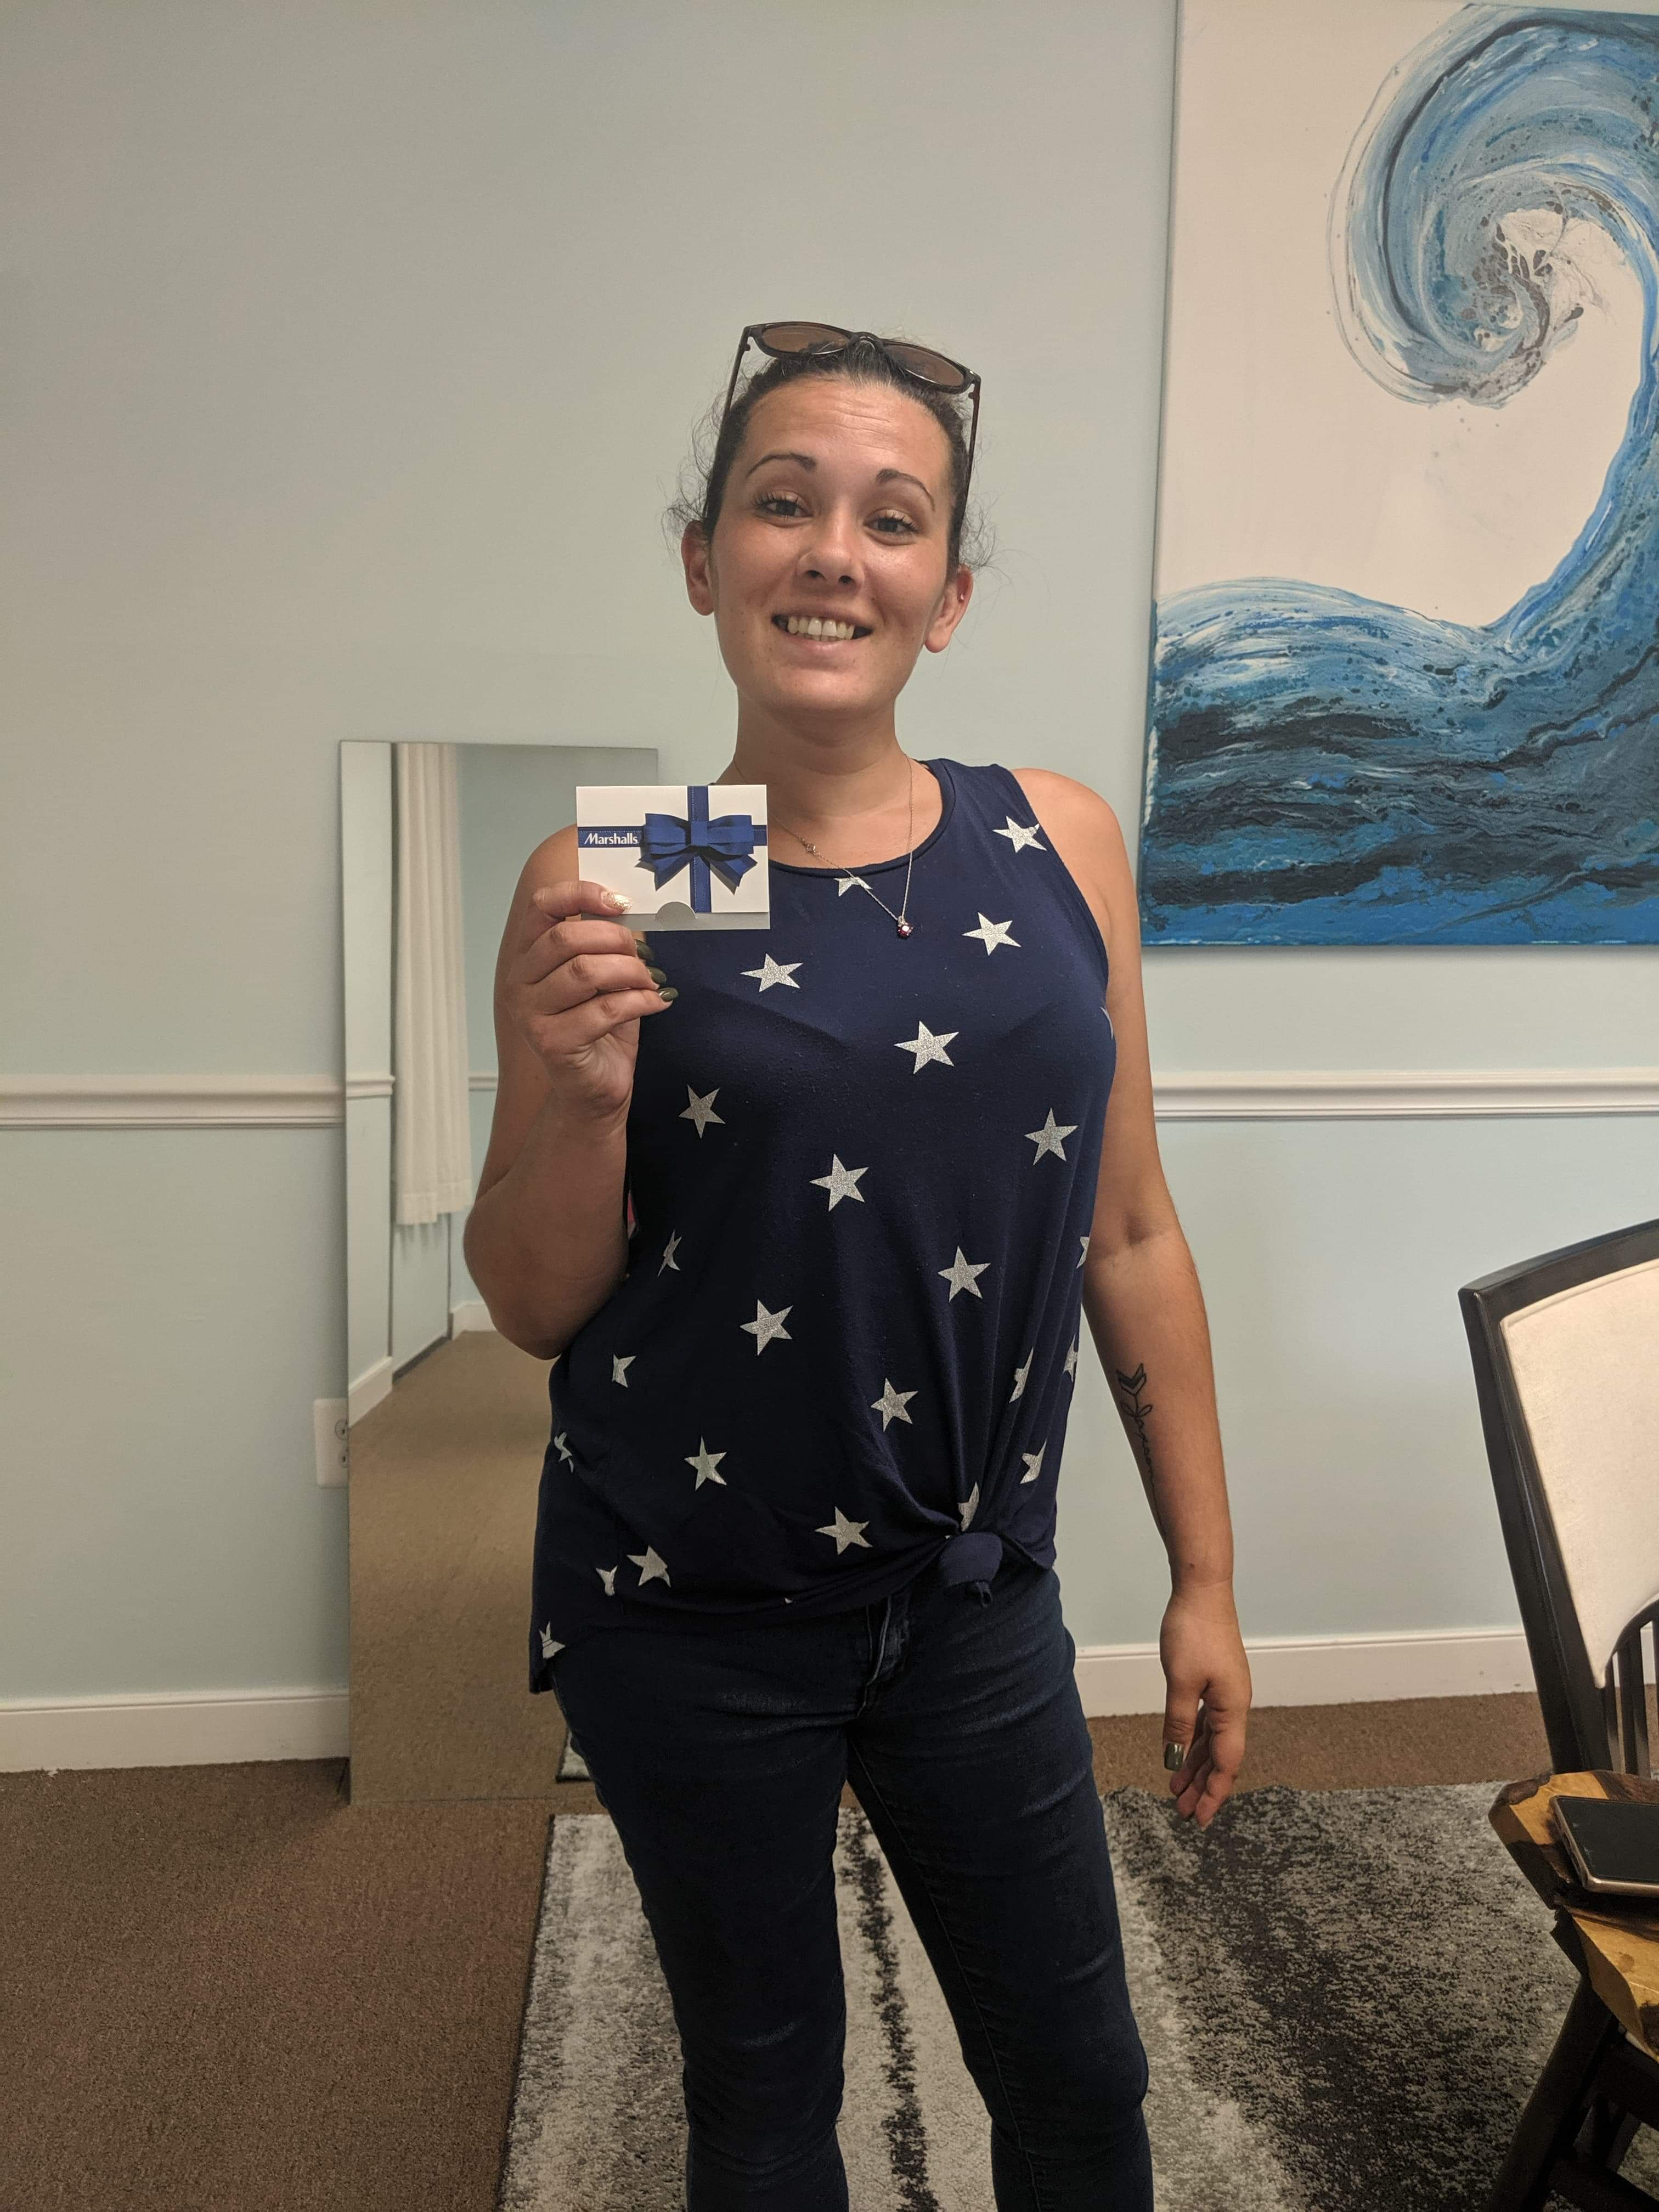 Ashlee Garrett - fall/winter 2019 Referral Program winner at Sparks Insurance Agency - Lutherville - Timonium MD